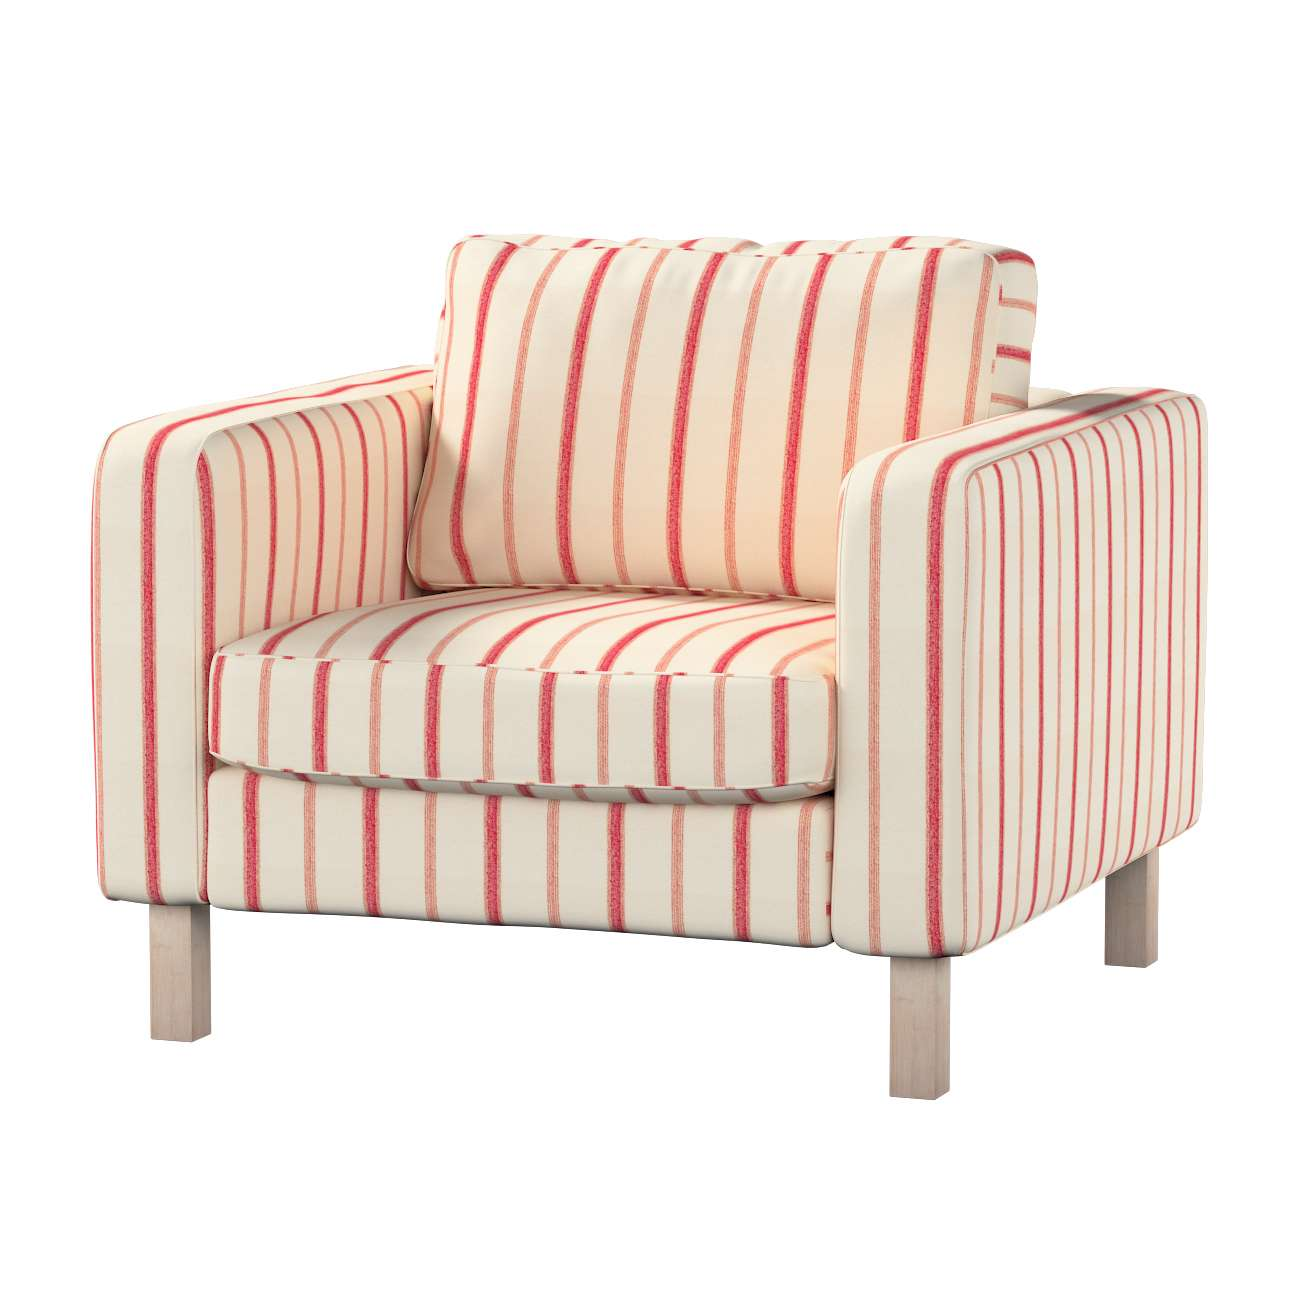 Karlstad armchair cover in collection Avinon, fabric: 129-15